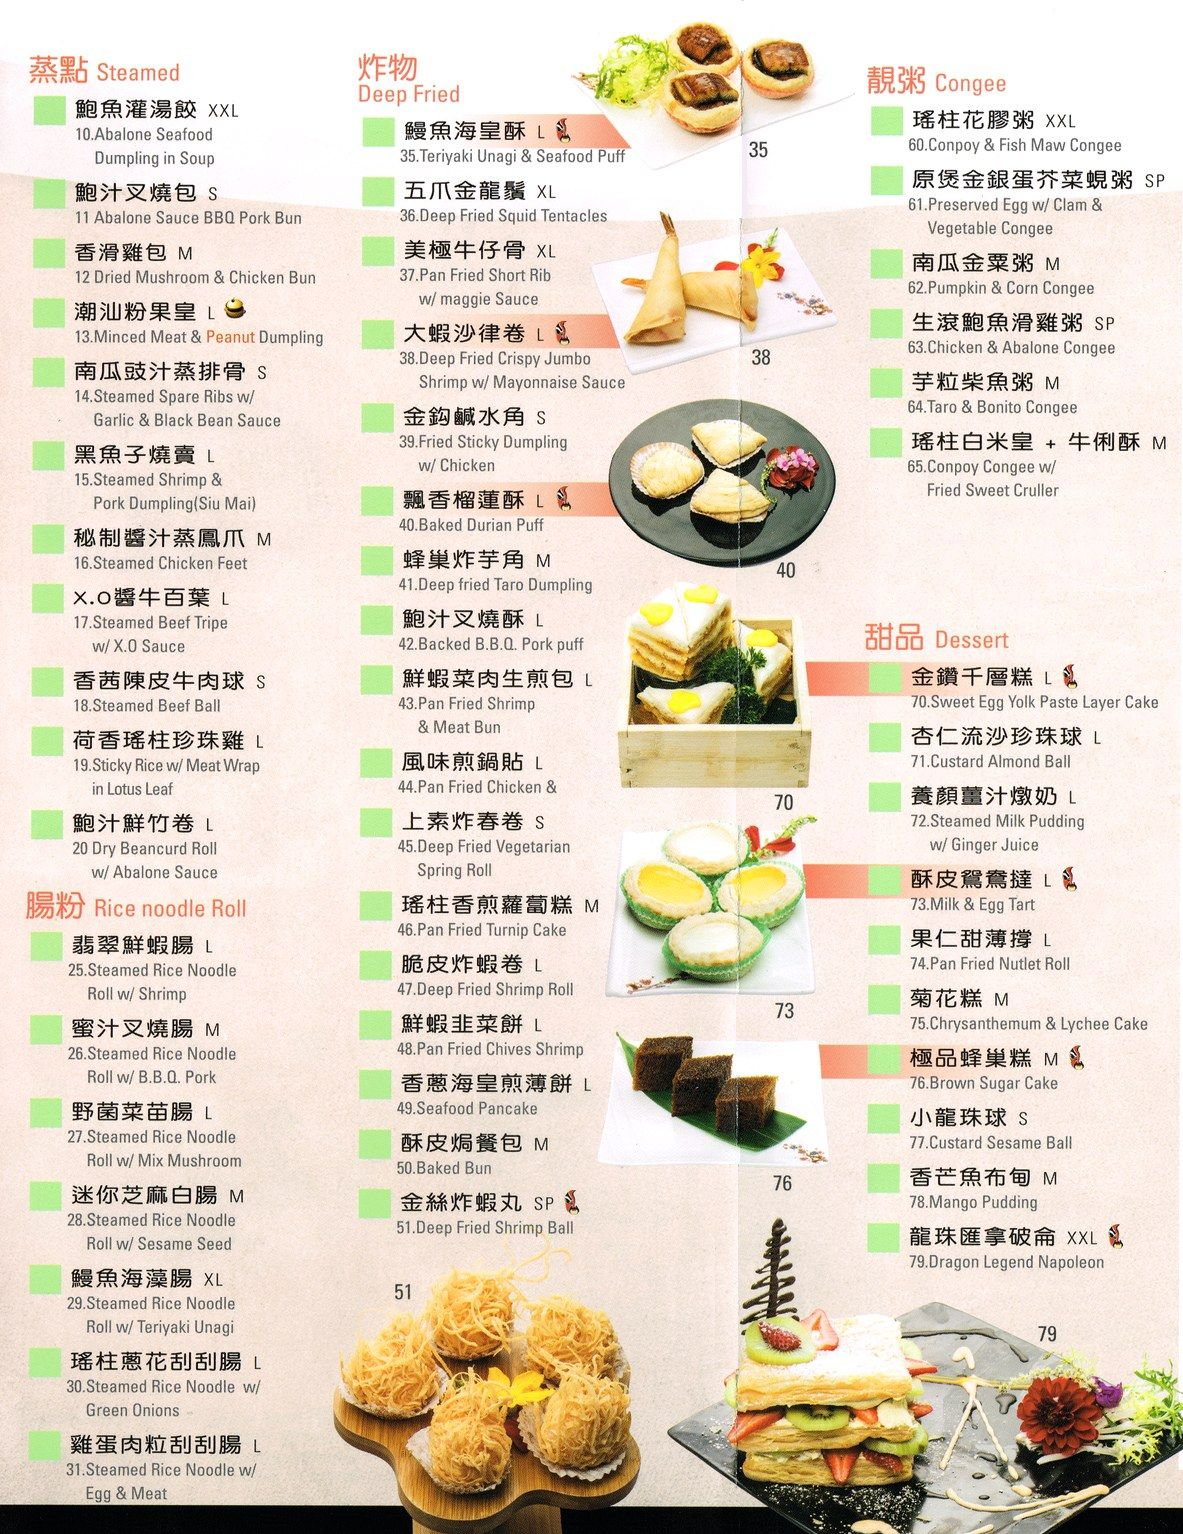 Dragon Legend Menu 龍珠匯菜单 25 Lanark Rd Markham 9059401811 Chicken Buns Pork Buns Menu Restaurant